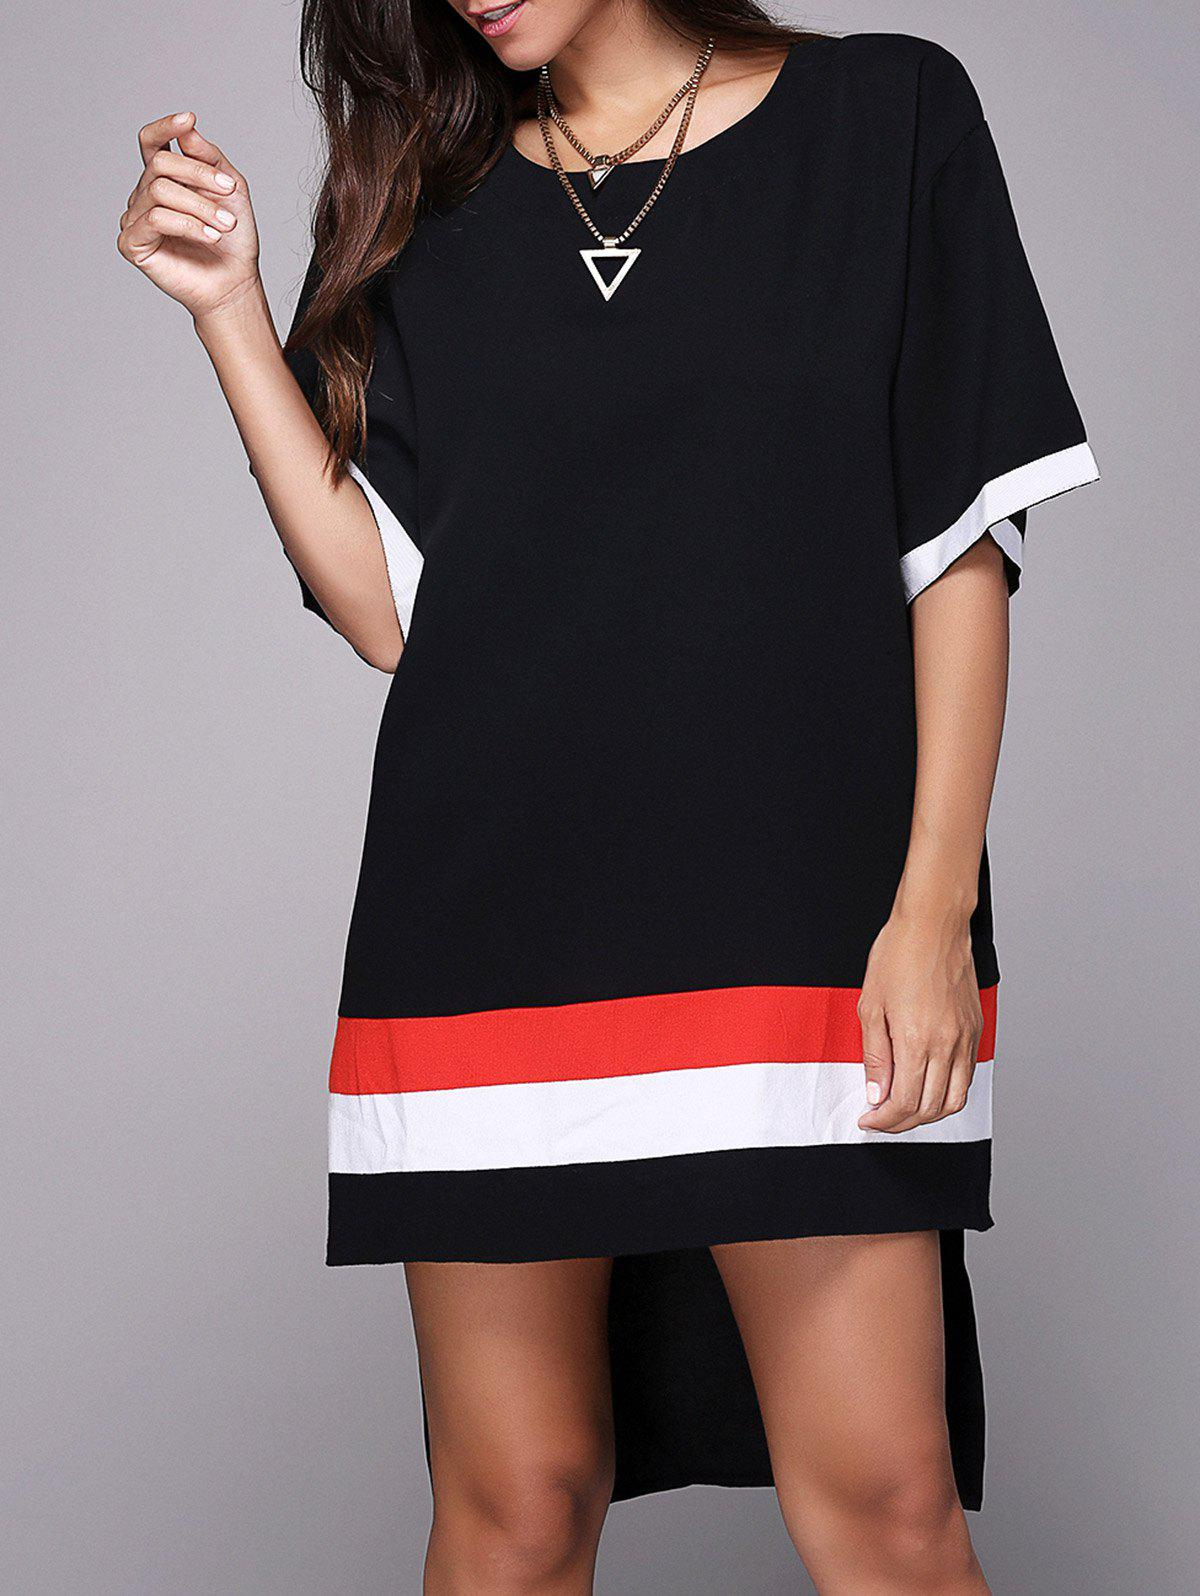 Casual Style Women's Jewel Neck Half Sleeve Loose-Fitting Side Slit T-Shirt - BLACK ONE SIZE(FIT SIZE XS TO M)